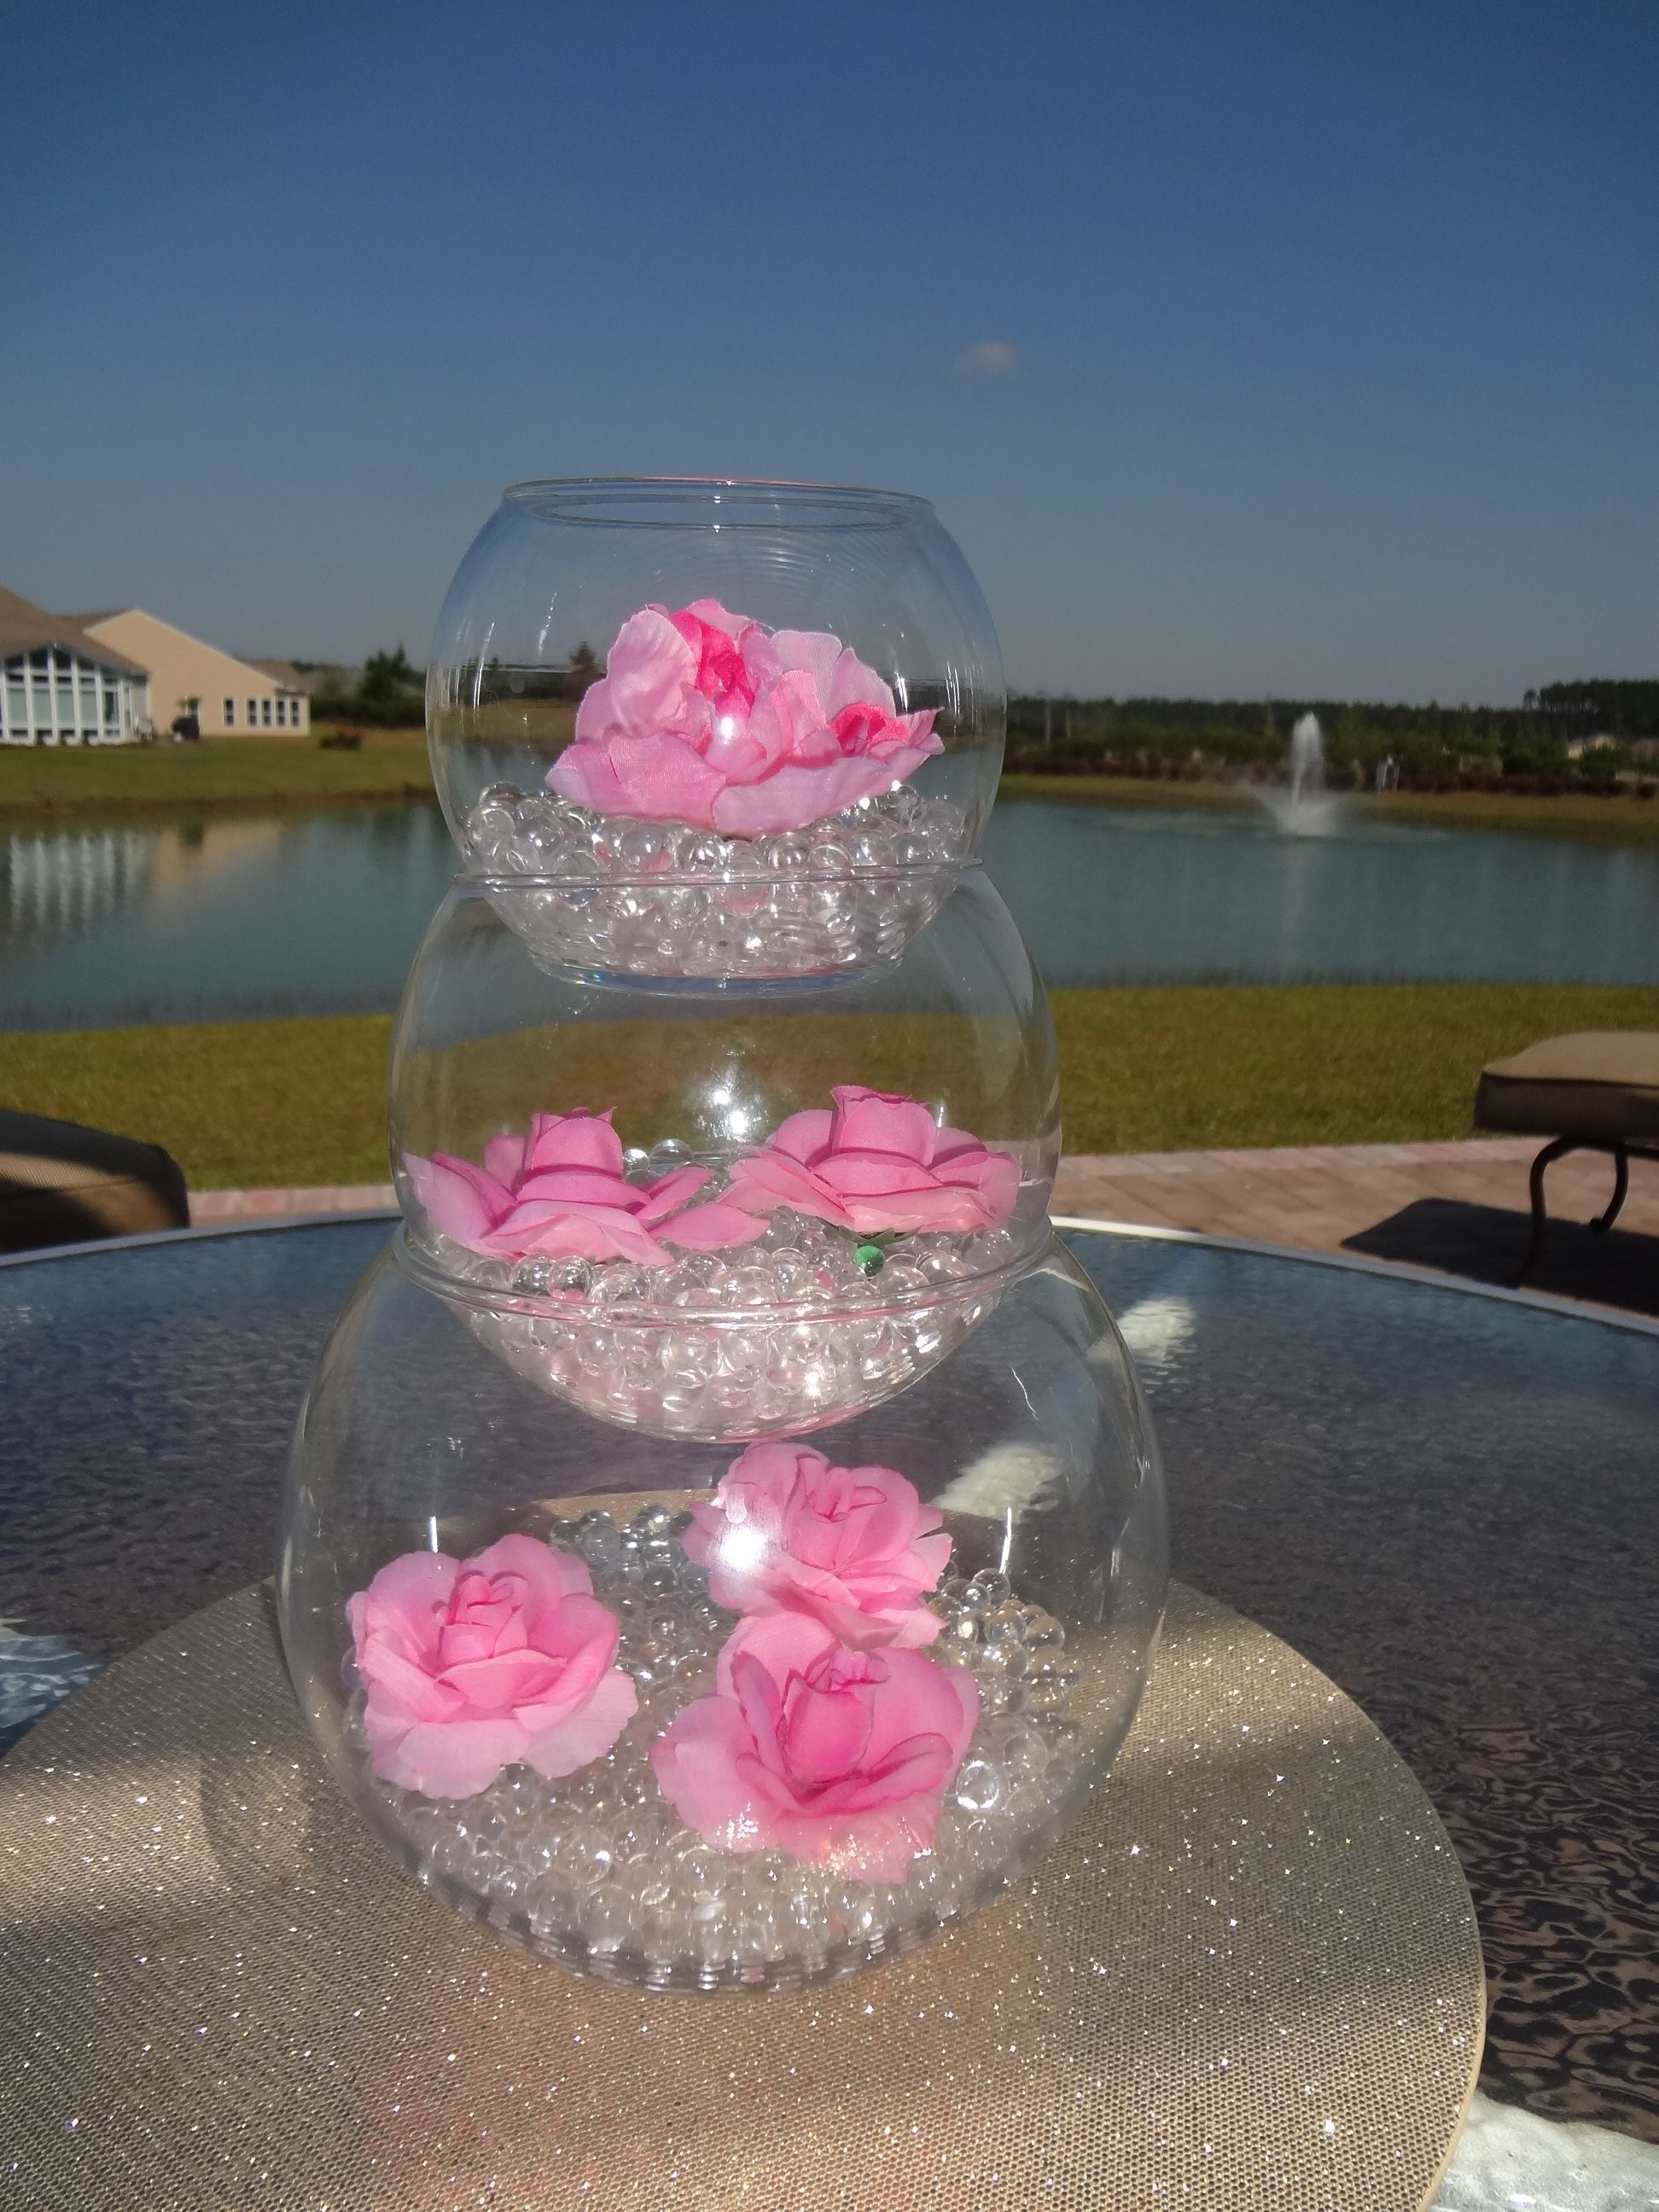 Diy wedding table decorations ideas  Pink Flower DIY Wedding Centerpiece  Tables decorations  Pinterest